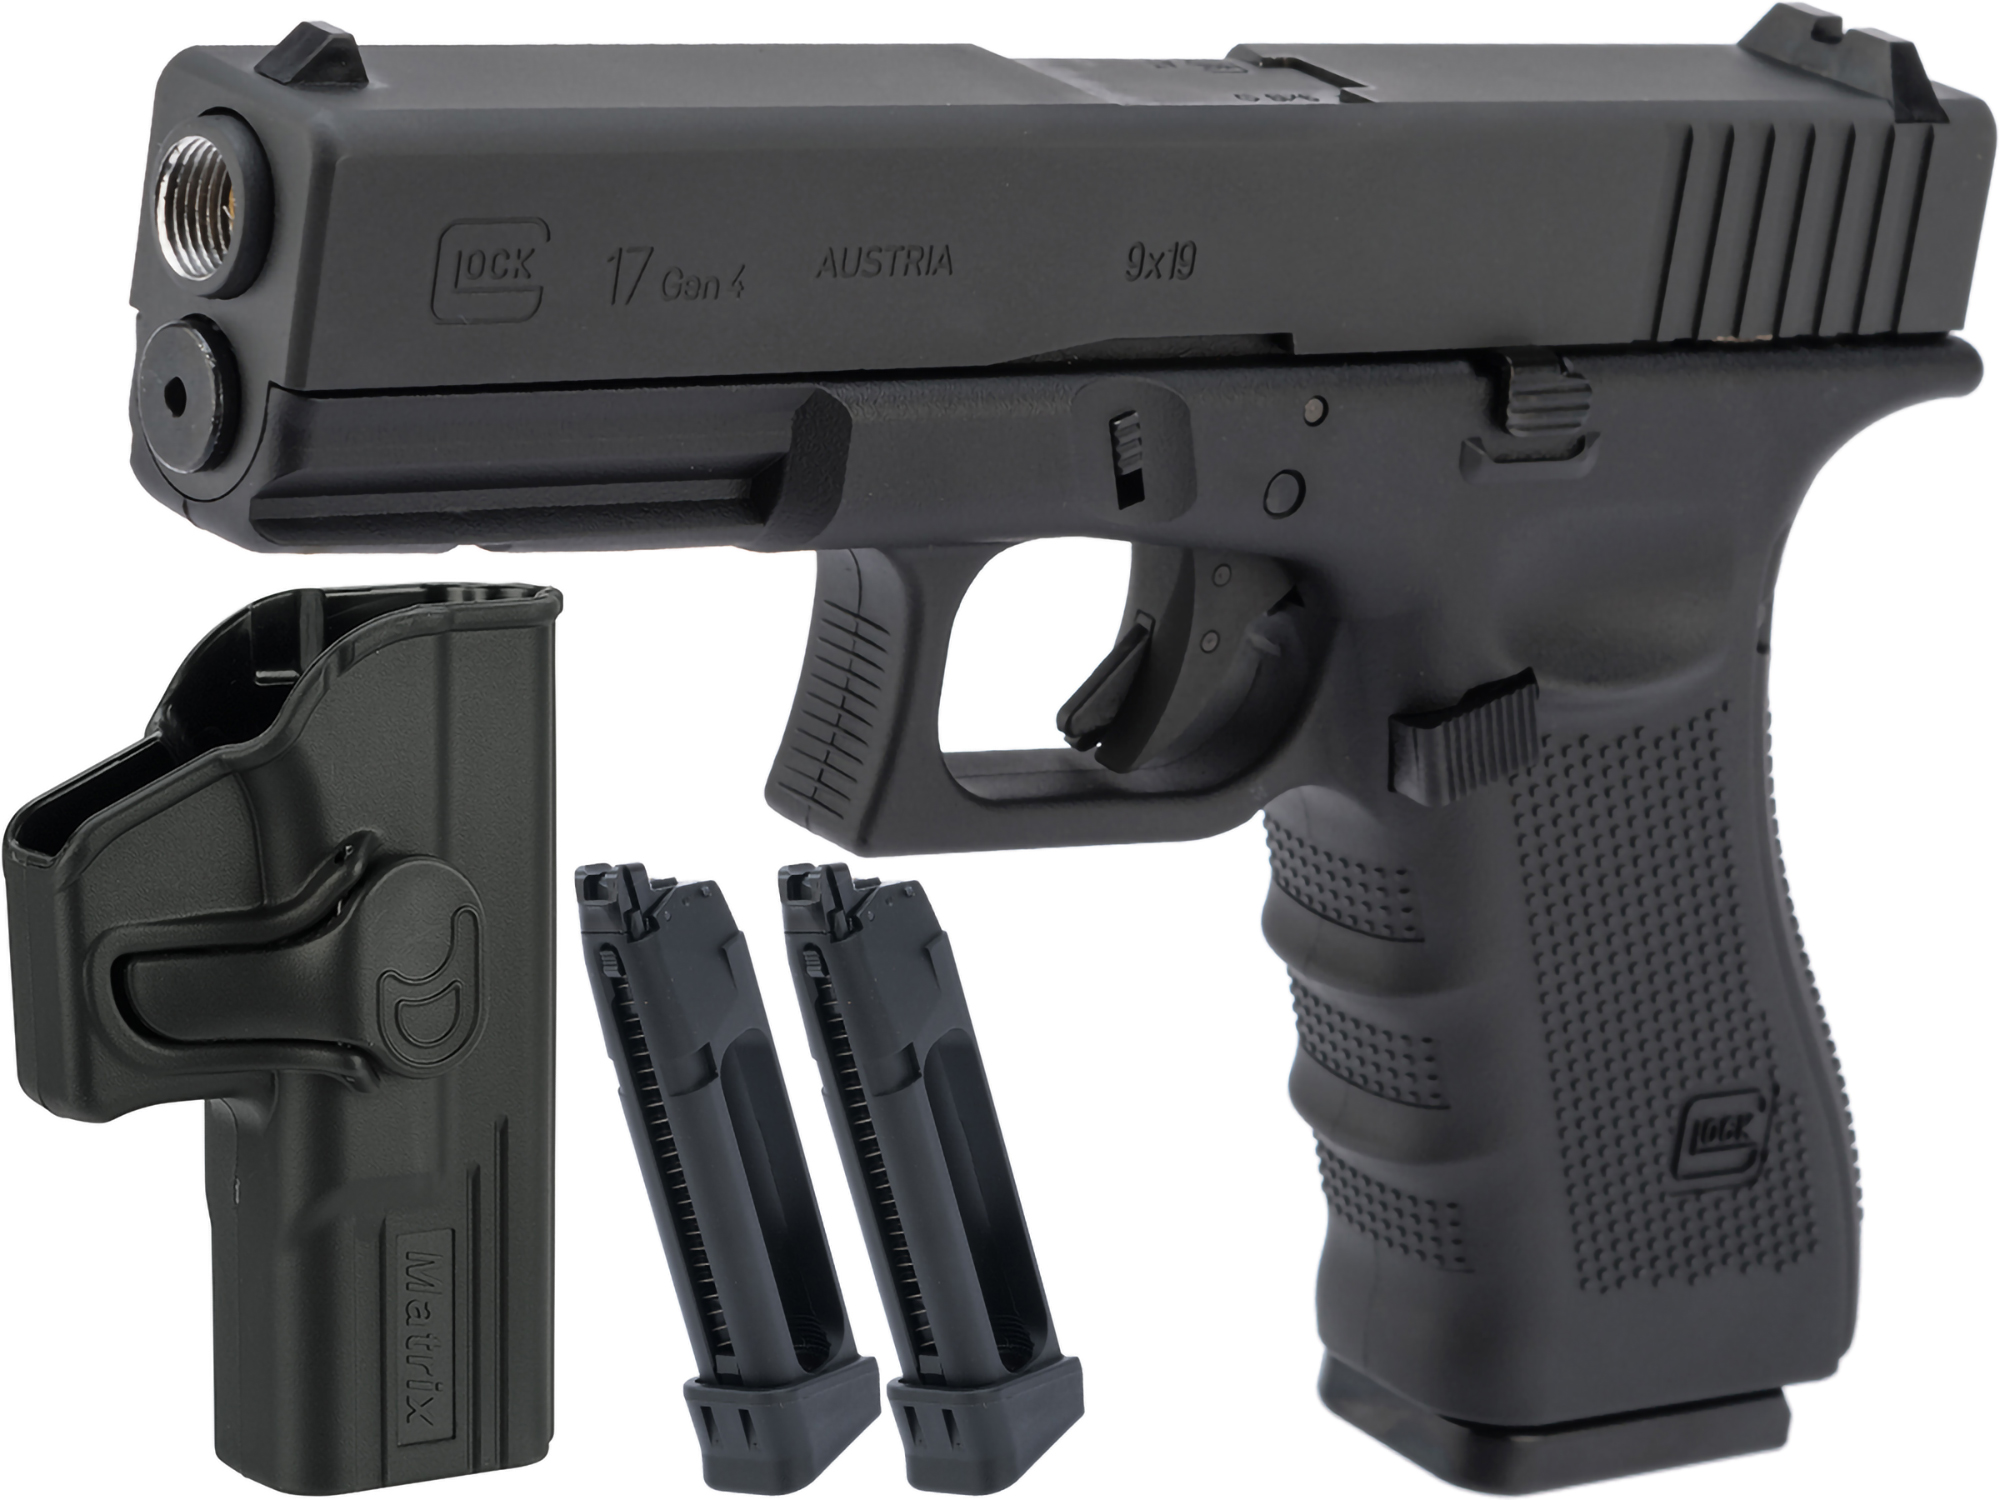 Umarex Fully Licensed GLOCK 17 Gen4 Gas Blowback Airsoft Training Pistol by KWC (Model: CO2)